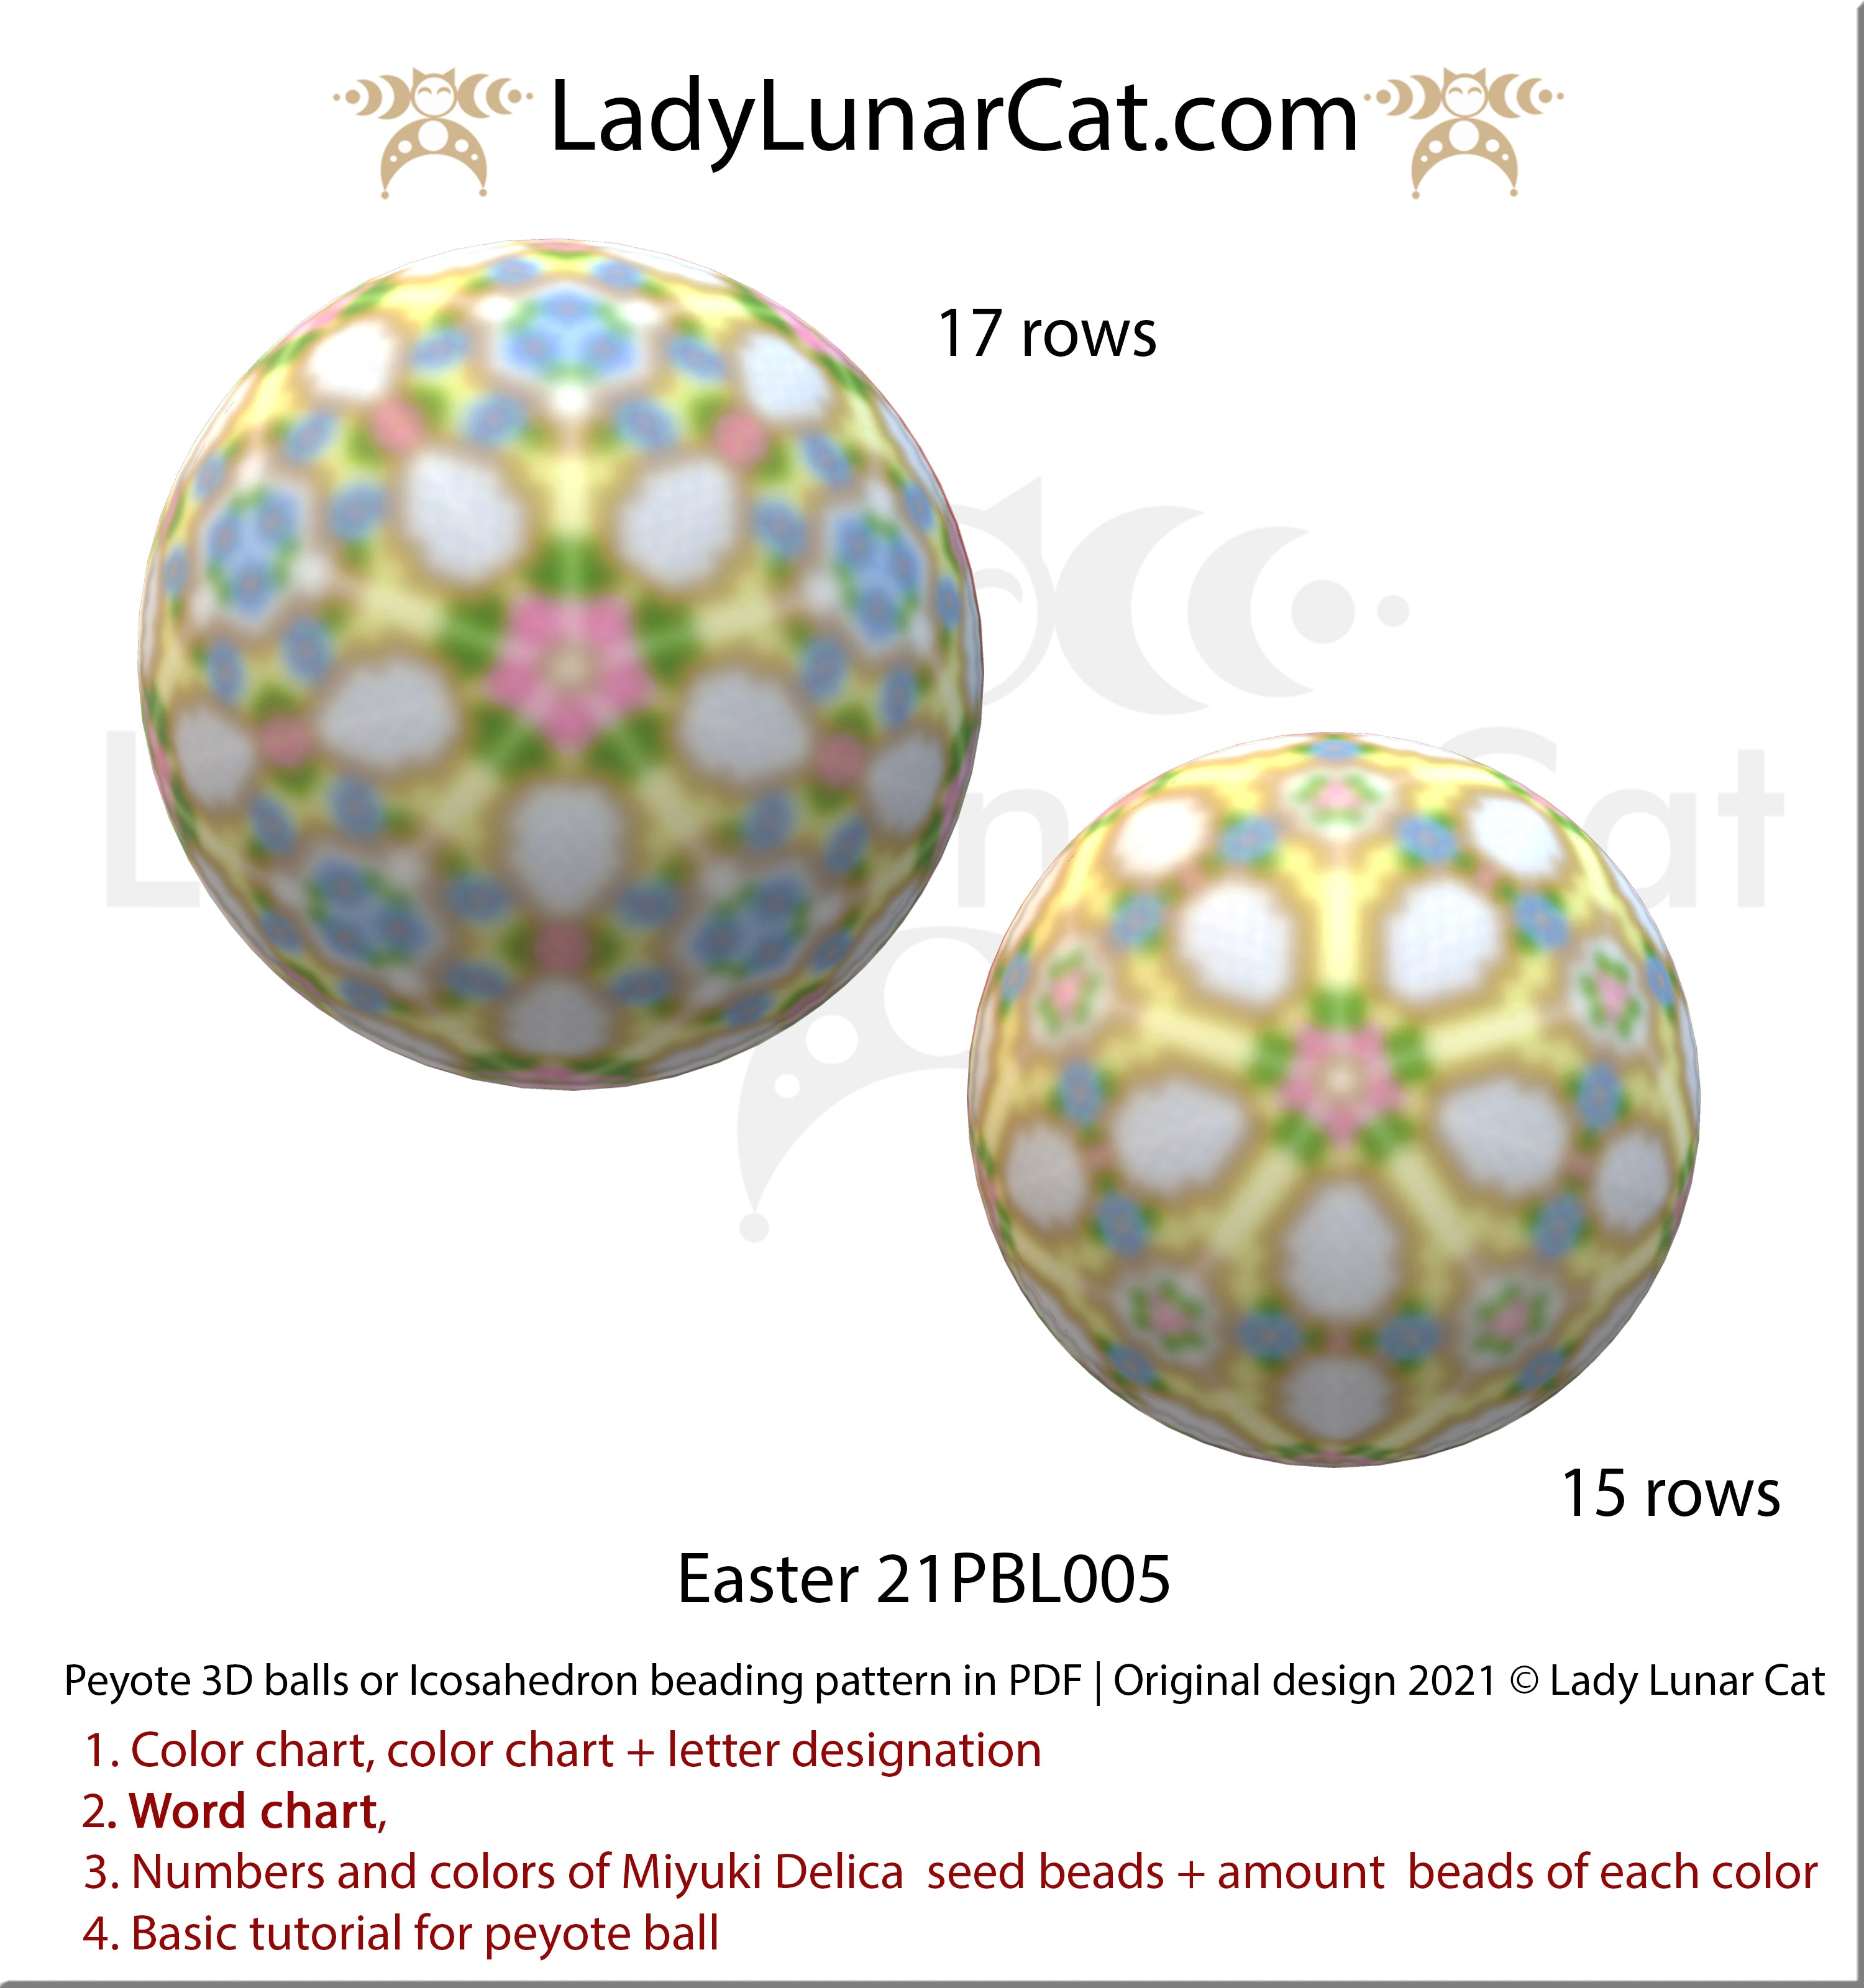 Peyote 3d ball pattern for beading with flowers | Beaded Icosahedron Easter 21PBL005 17/15 rows